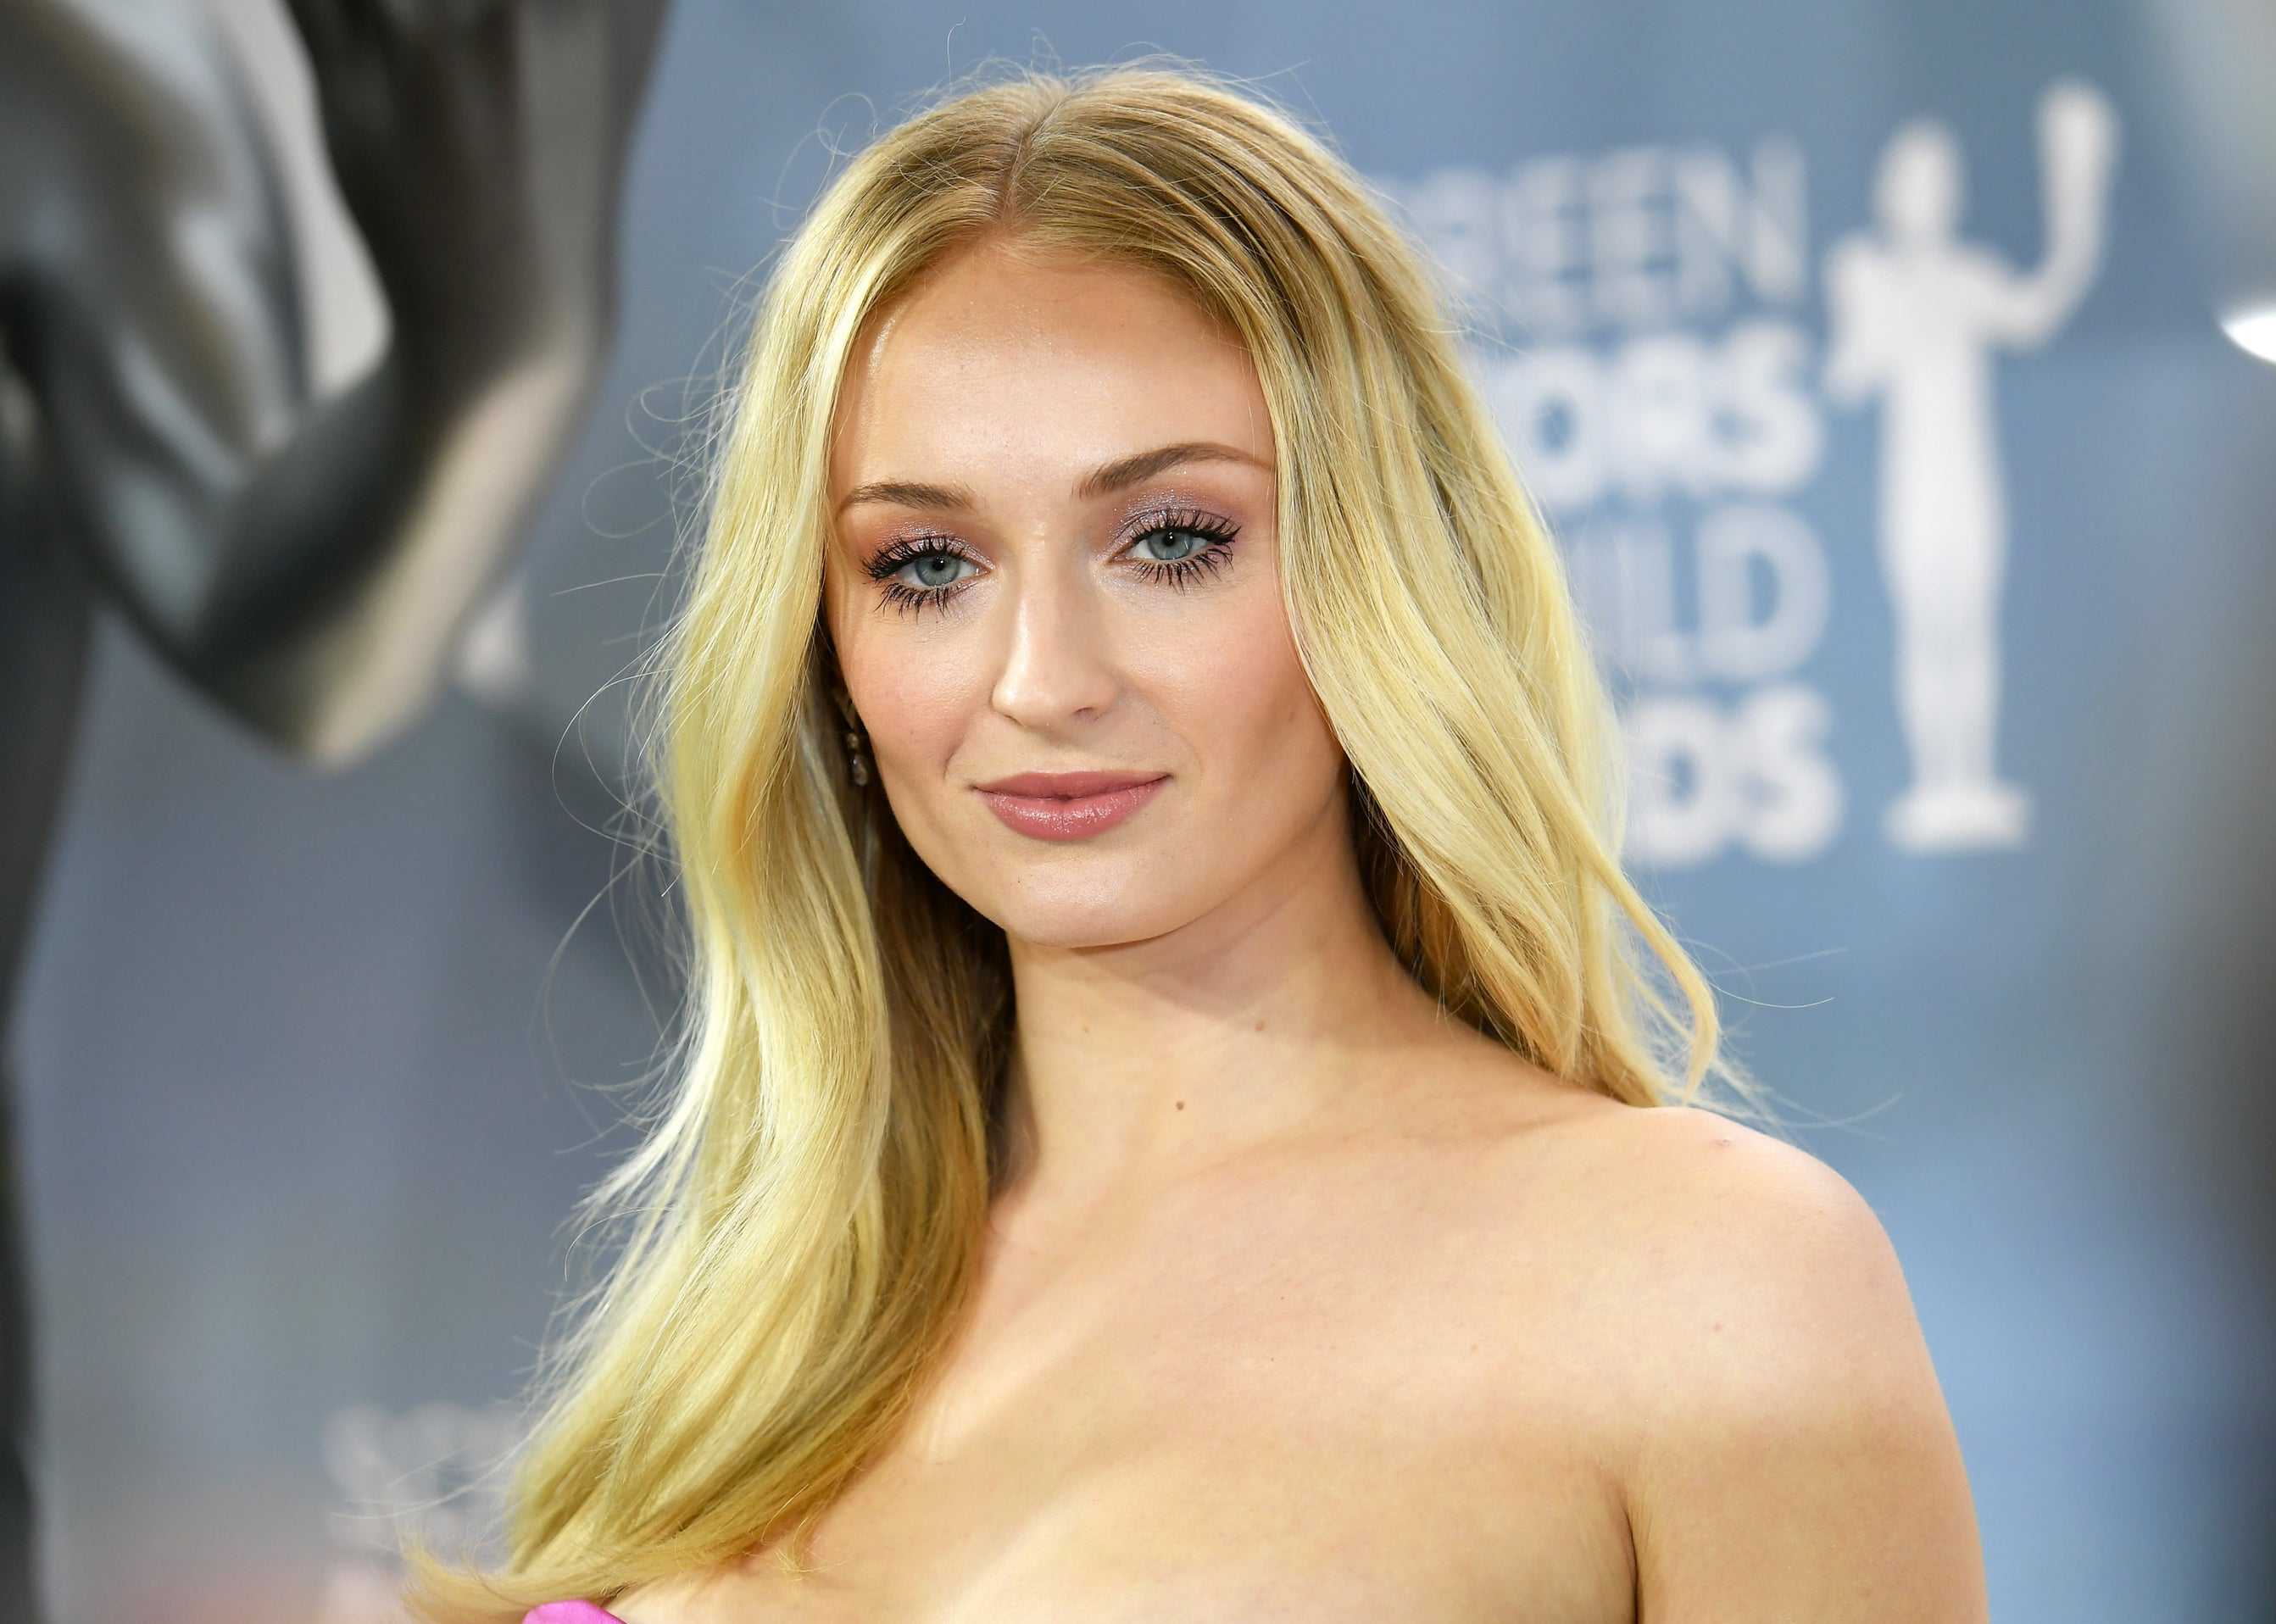 Sophie looks right into the camera in a strapless pink dress at an event